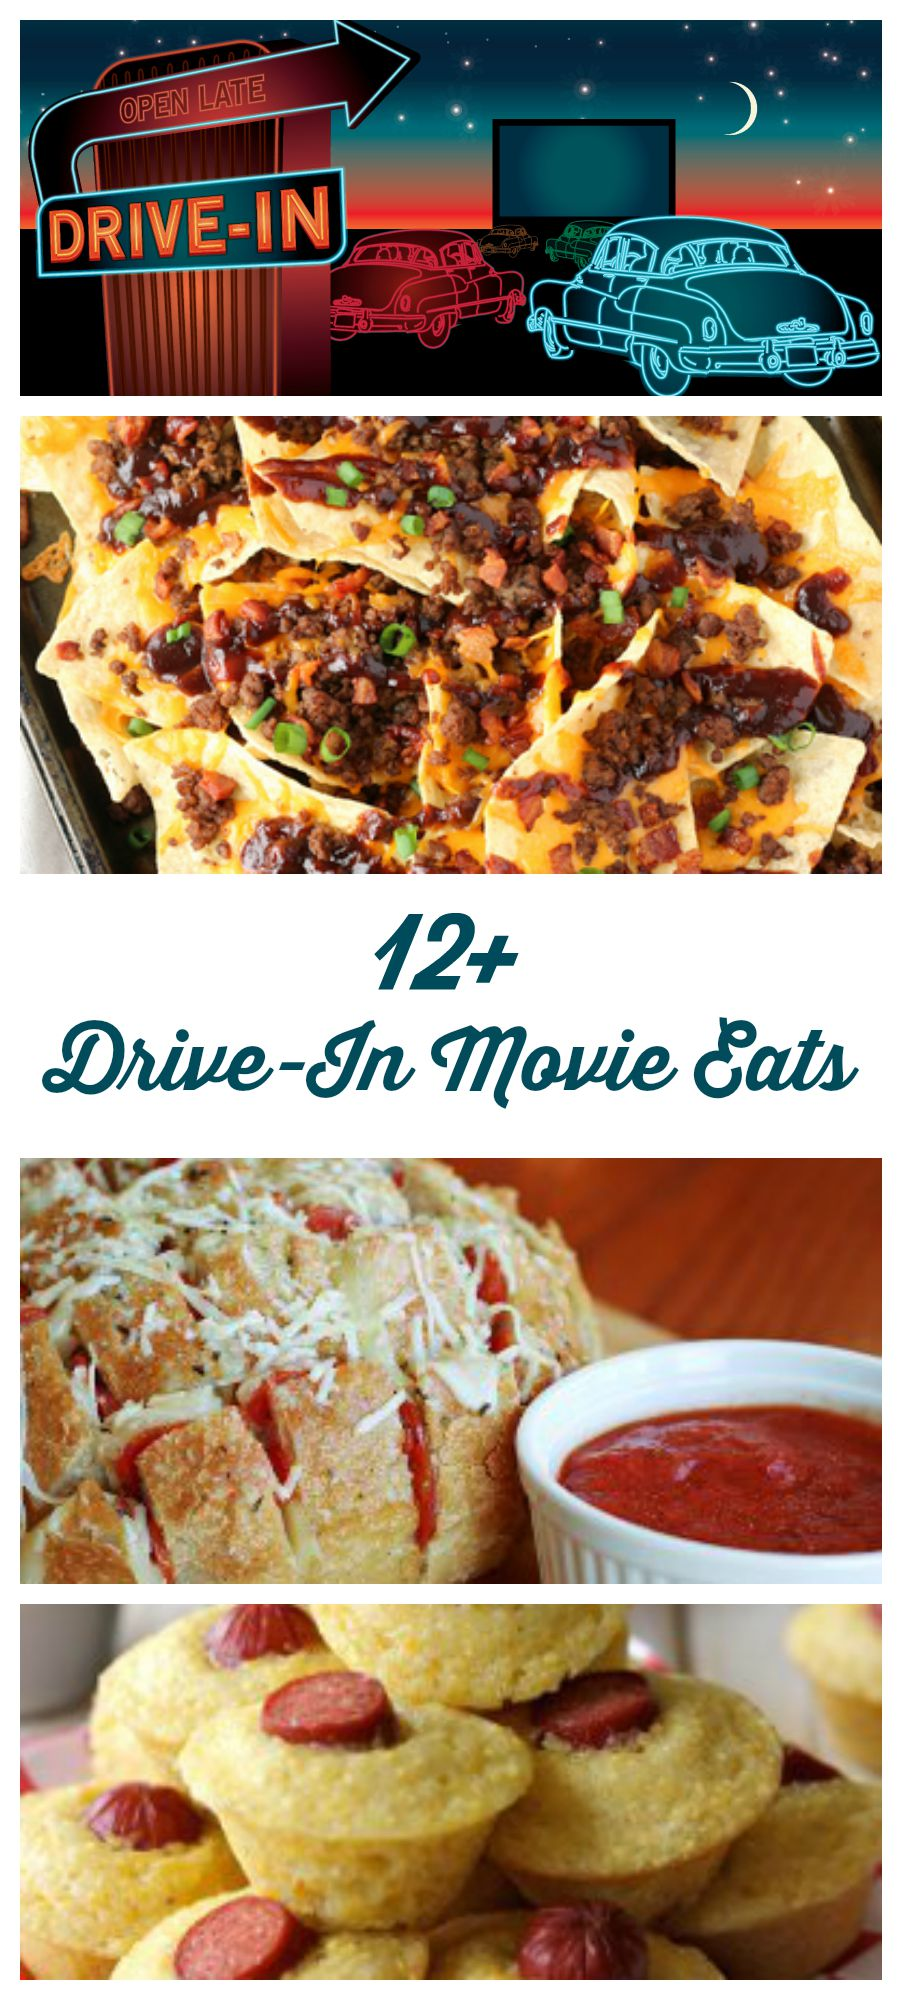 Drive-In-Movie-Eats